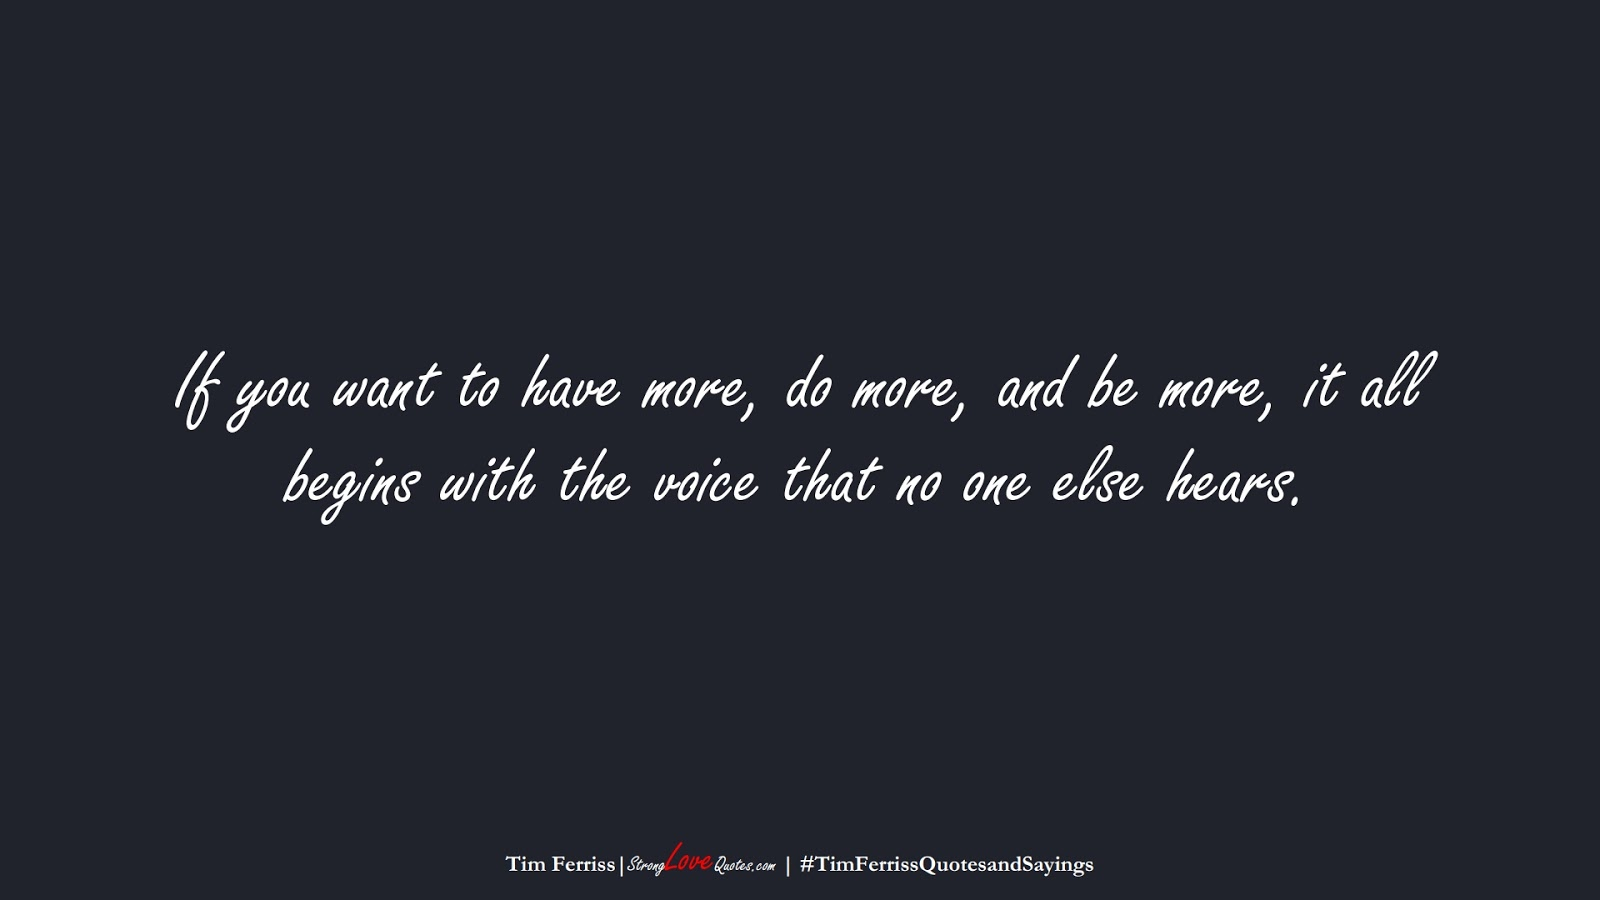 If you want to have more, do more, and be more, it all begins with the voice that no one else hears. (Tim Ferriss);  #TimFerrissQuotesandSayings